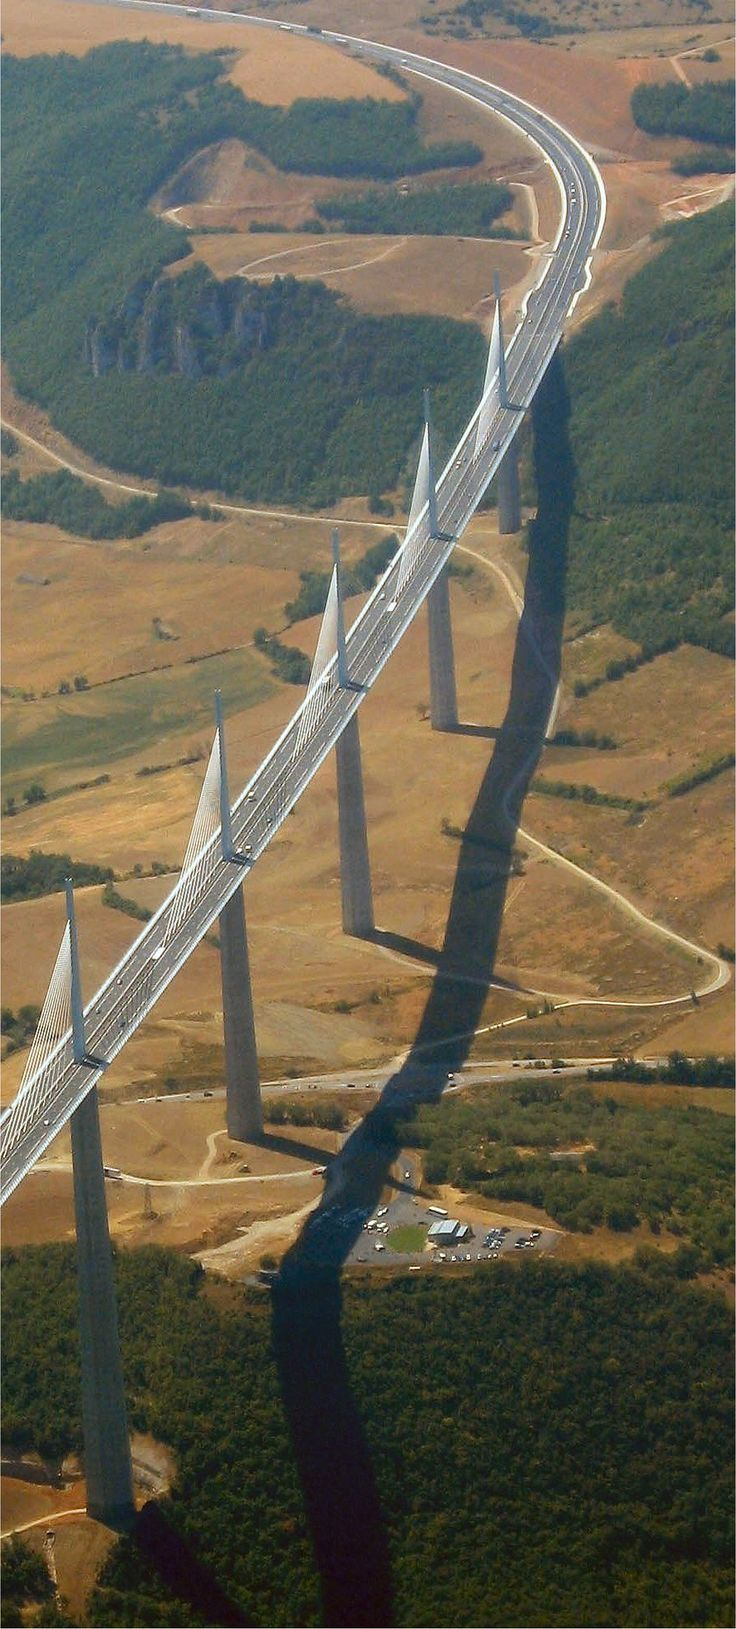 Aerial Photography - Milau Viaduct in France #aerialphotography #photography #france